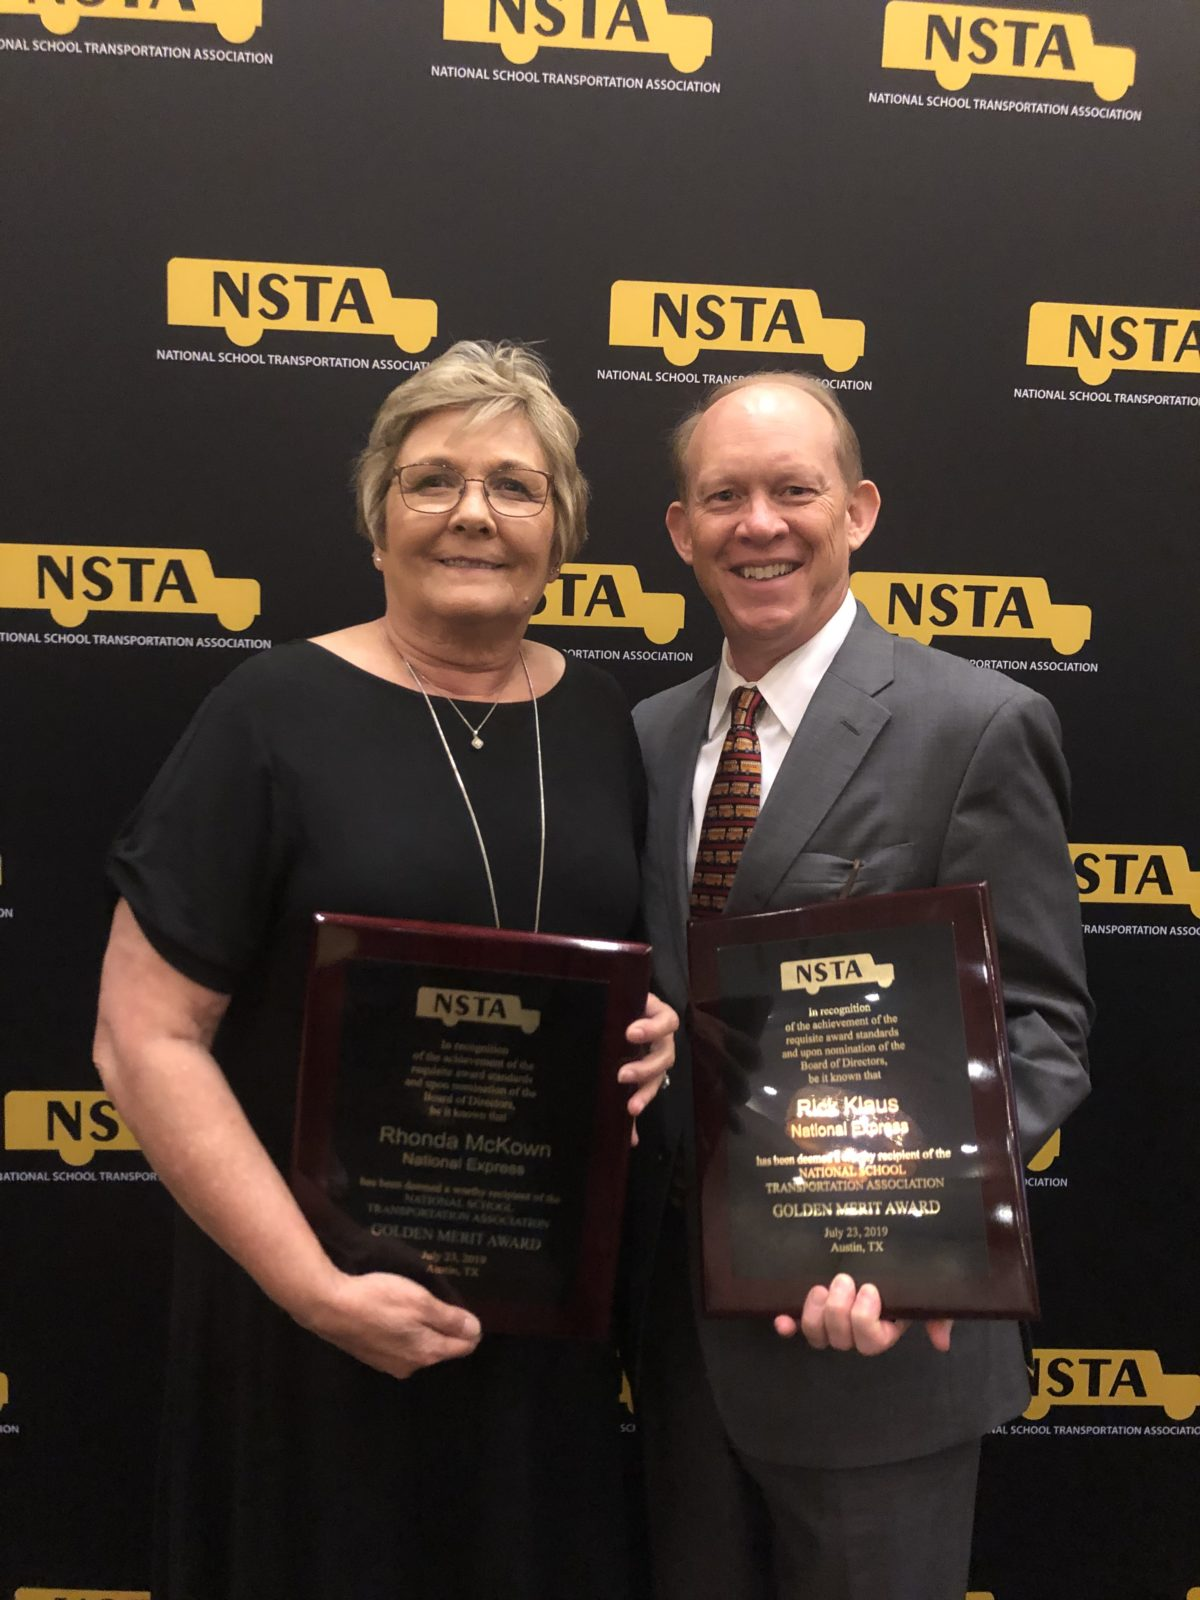 Rhonda McKown and Rick Klaus Awarded the Golden Merit Award  by the National Student Transportation Association